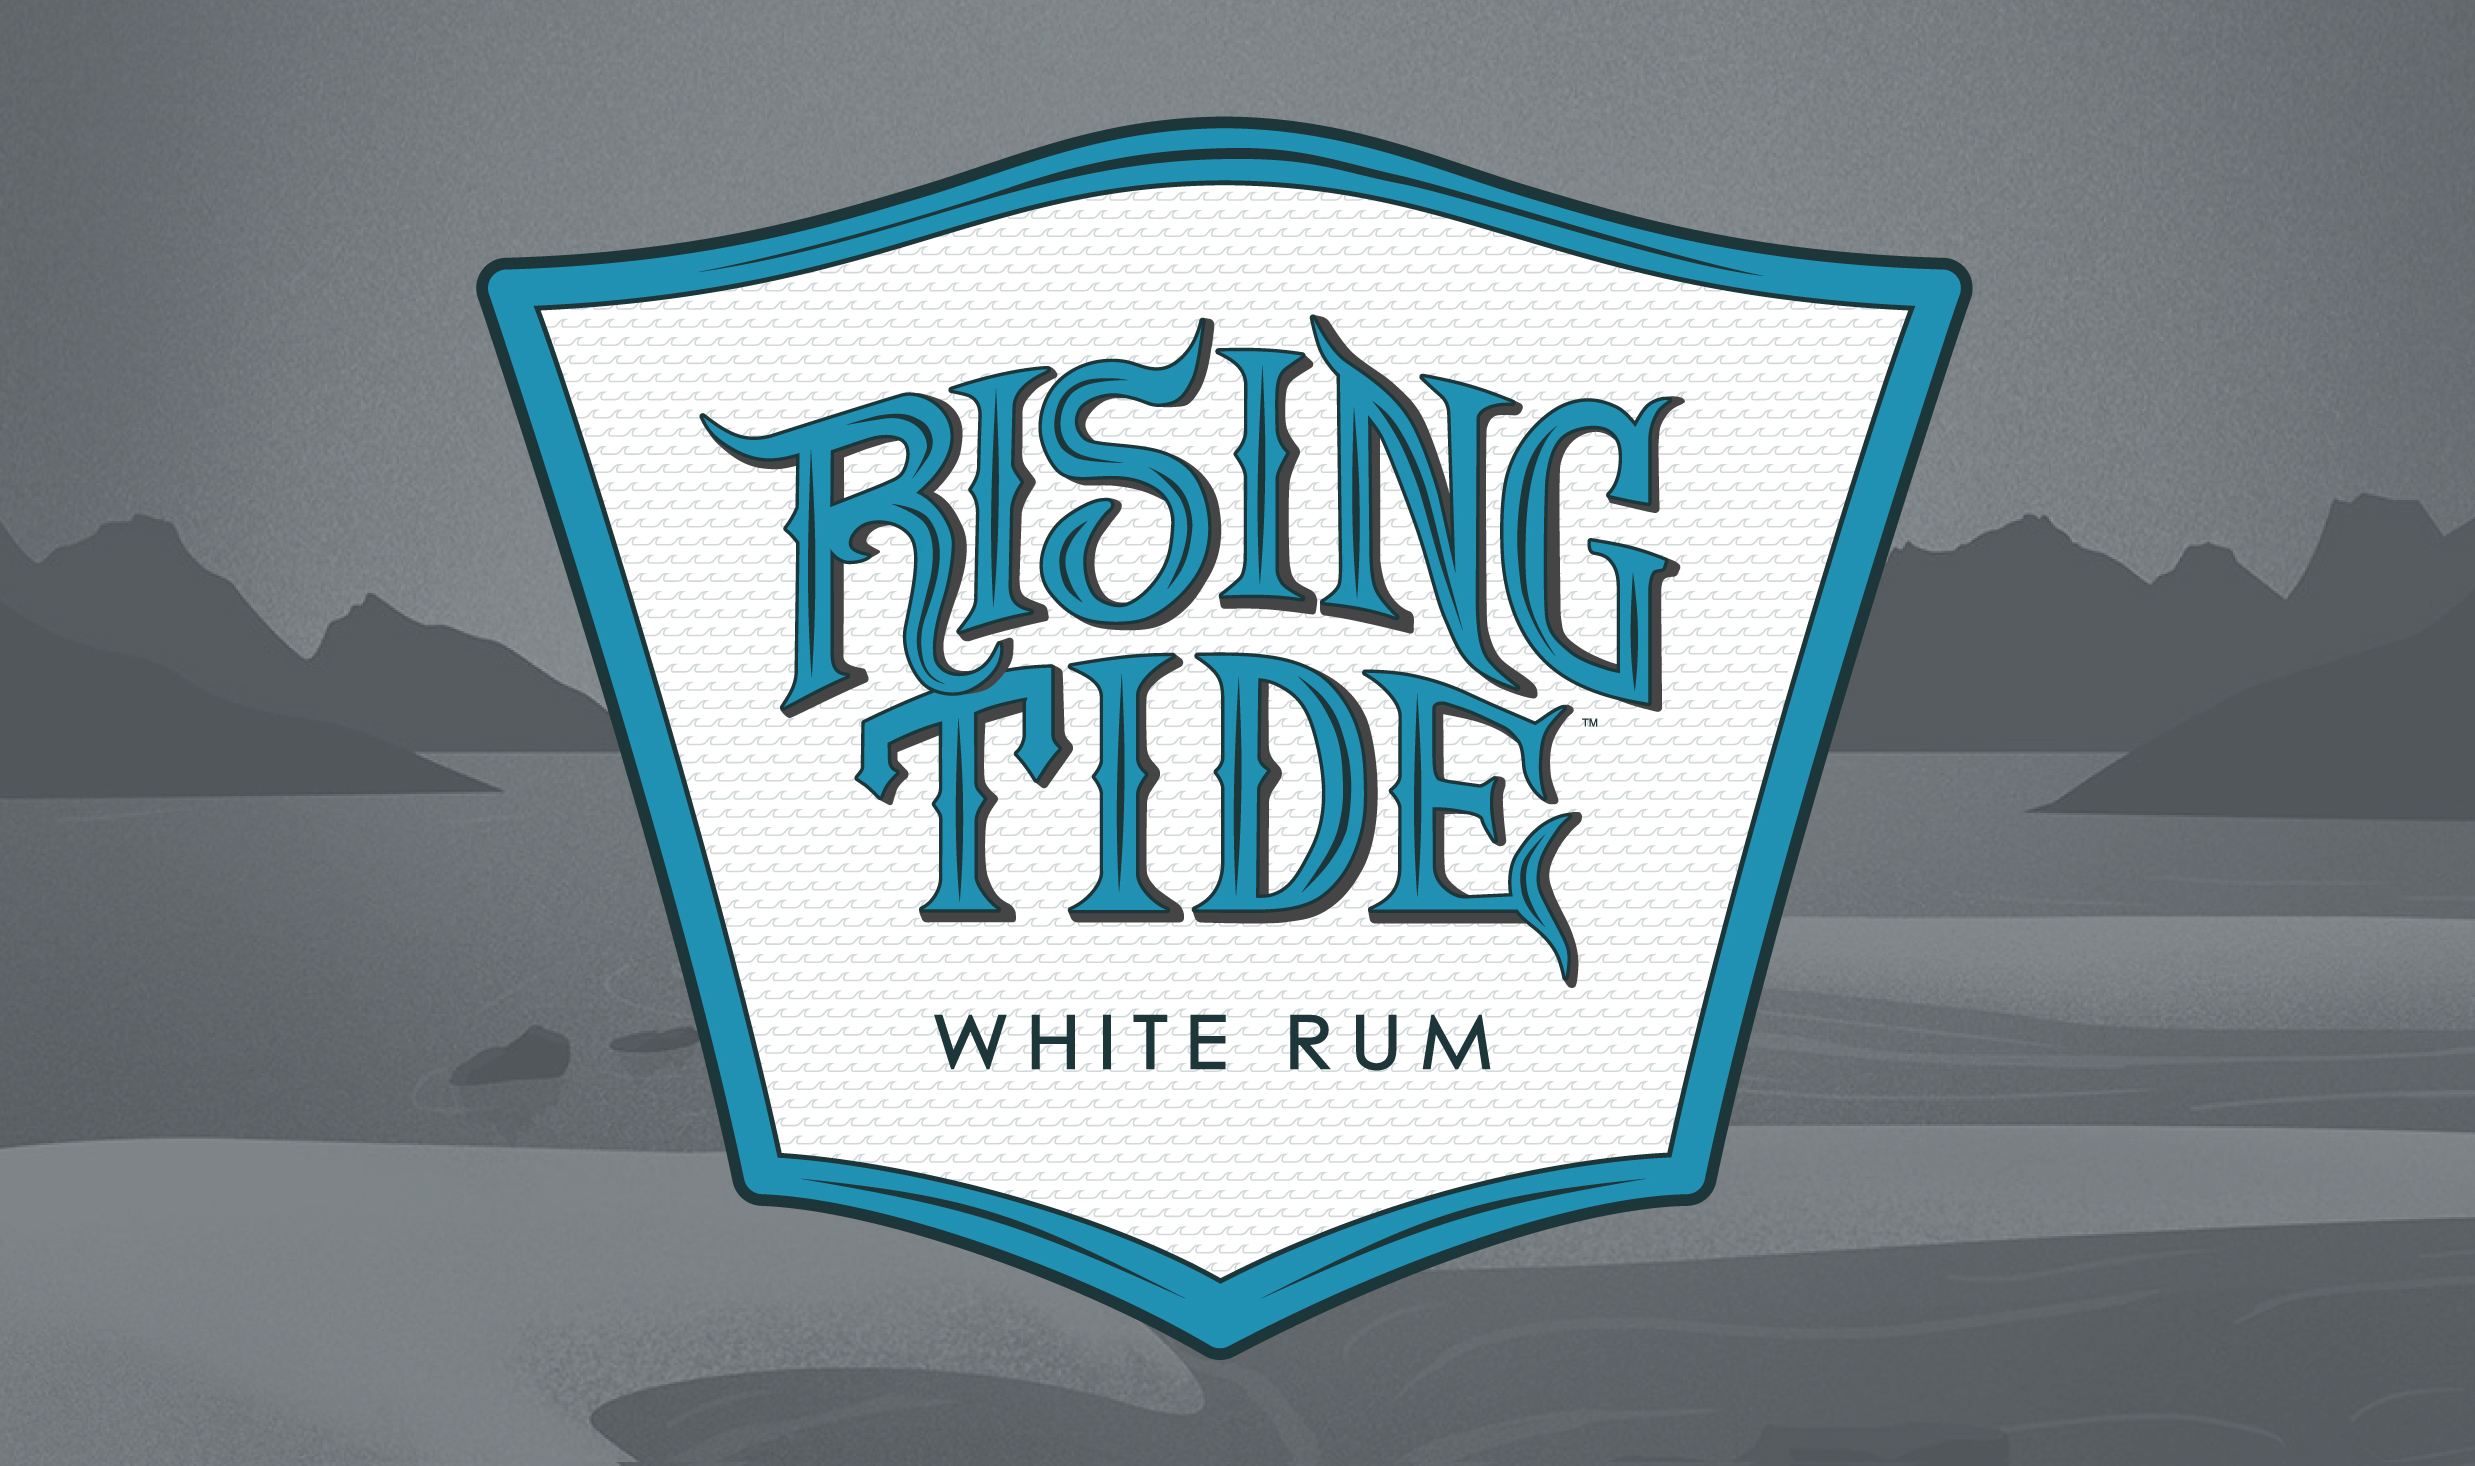 Rising Tide White Rum